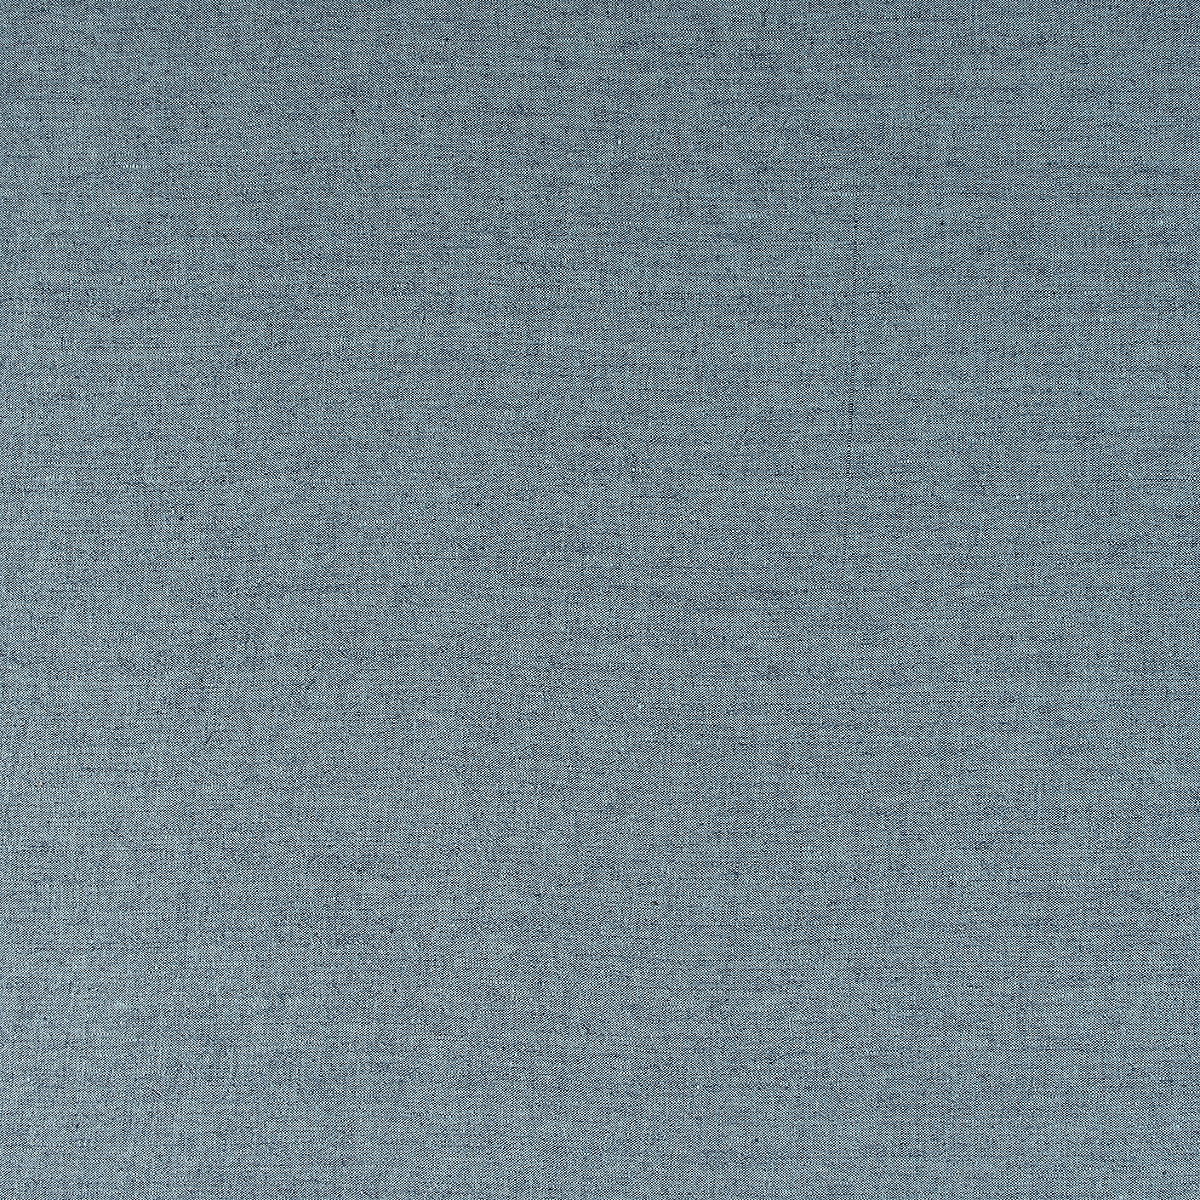 Oxford Linen: Ocean (fabric yardage)